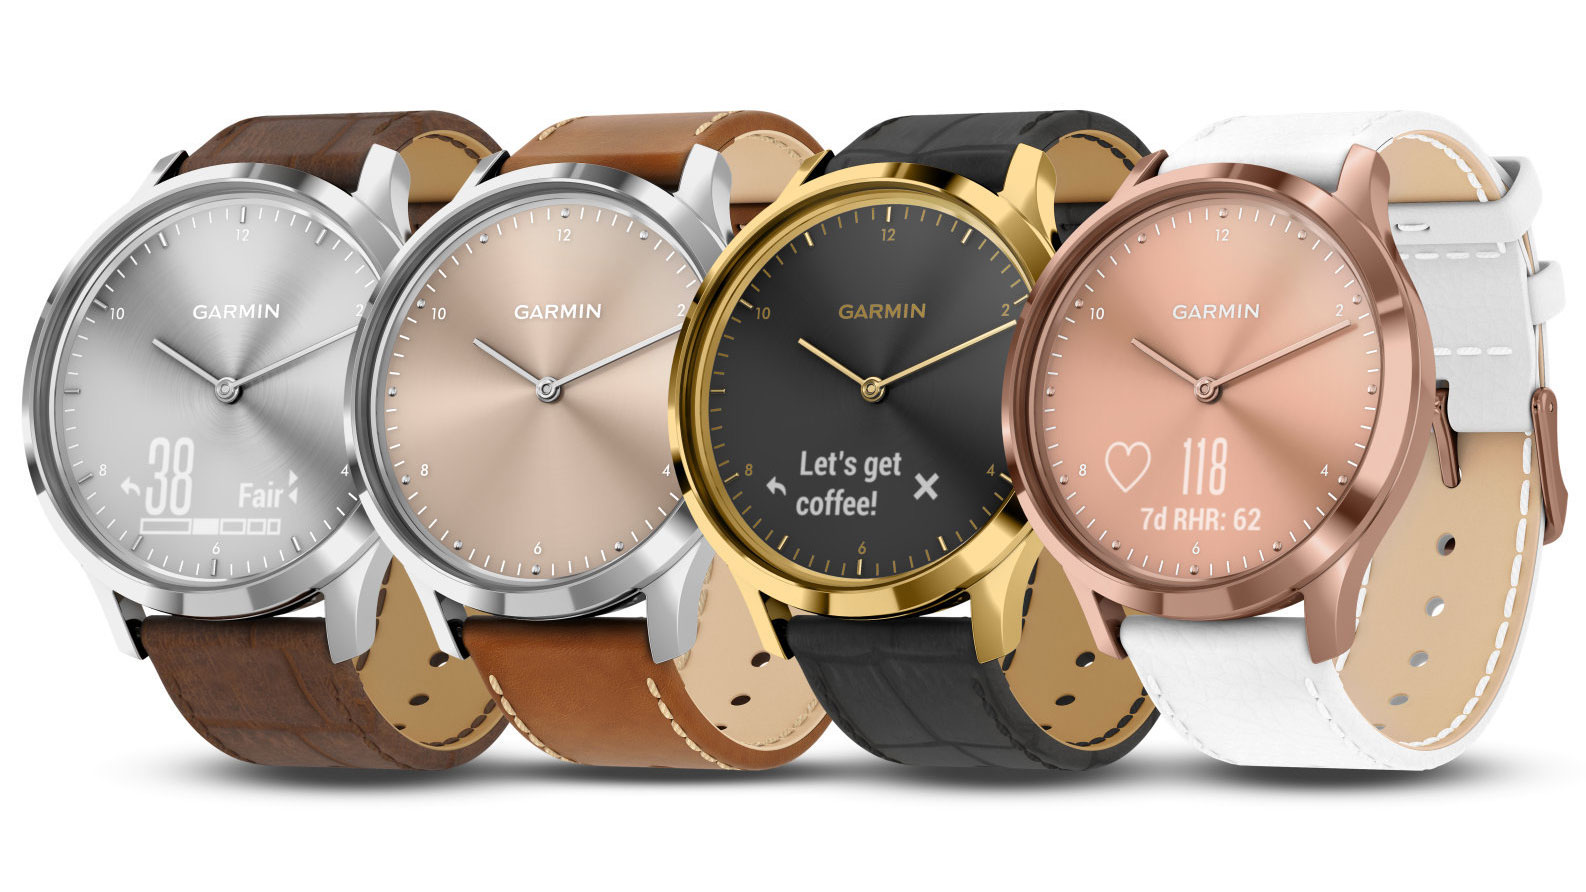 One of Garmin's most stylish smartwatches now comes in four new colors